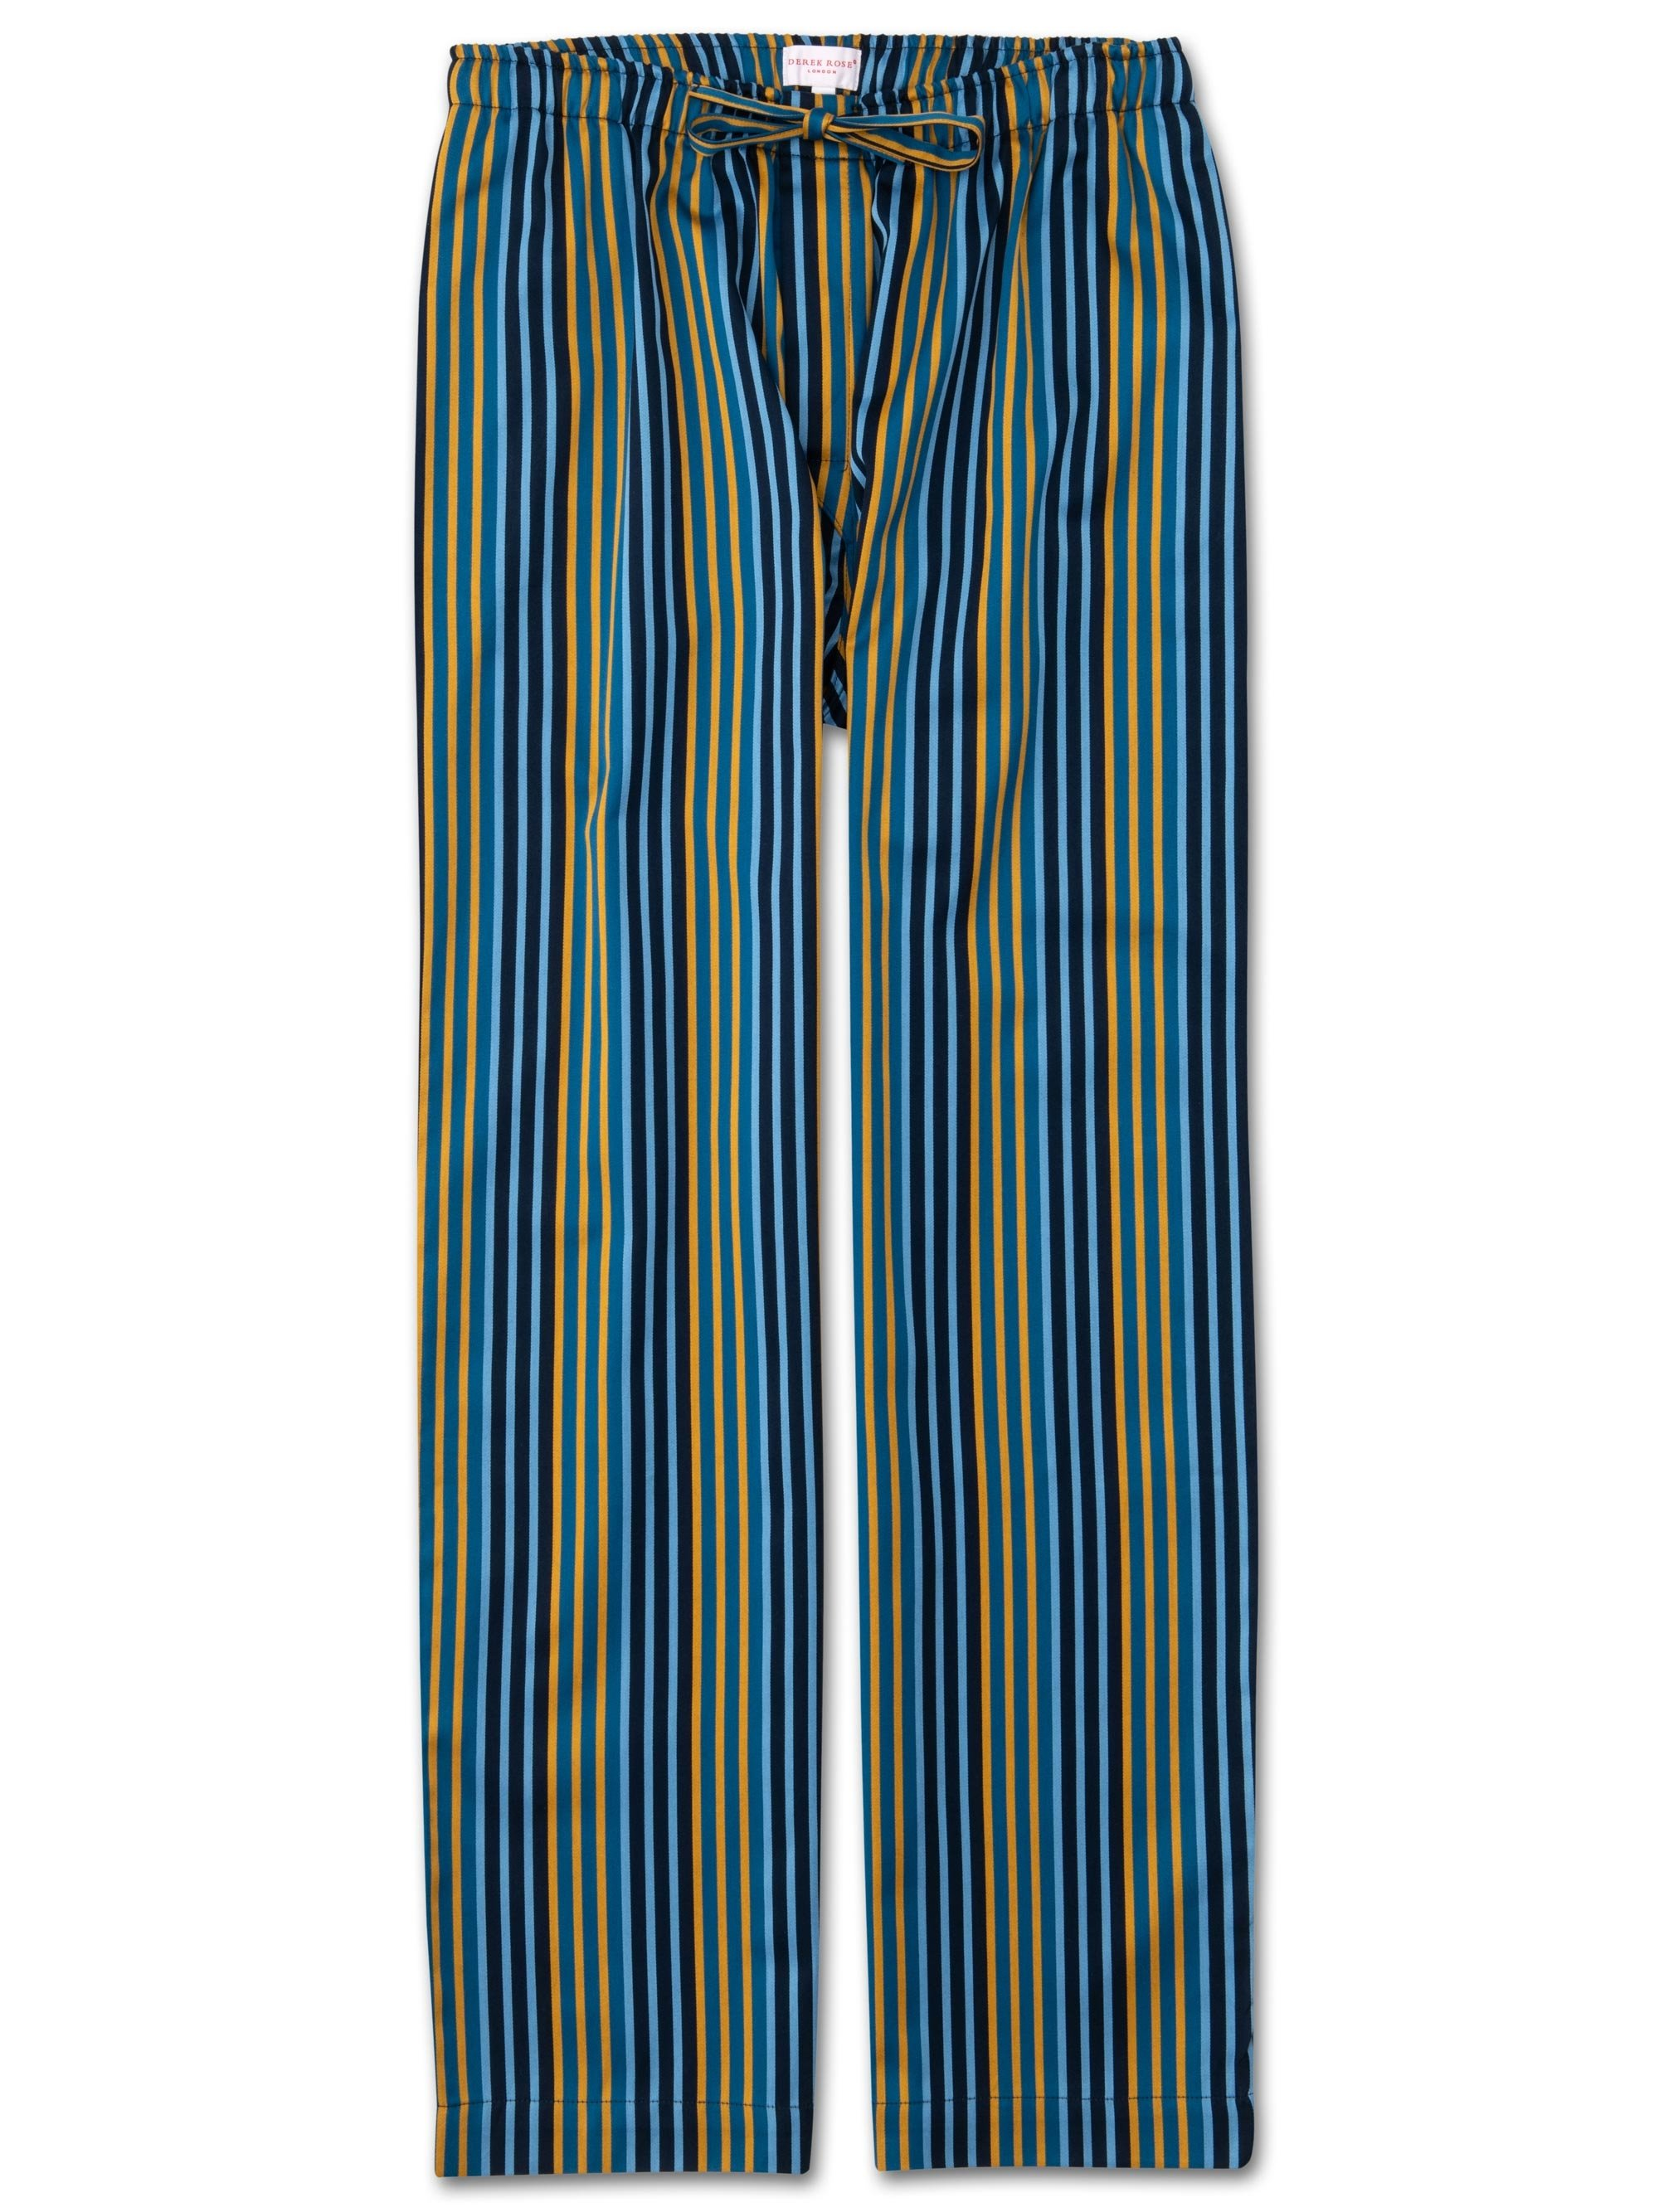 Men's Lounge Trousers Wellington 49 Cotton Full Satin Multi